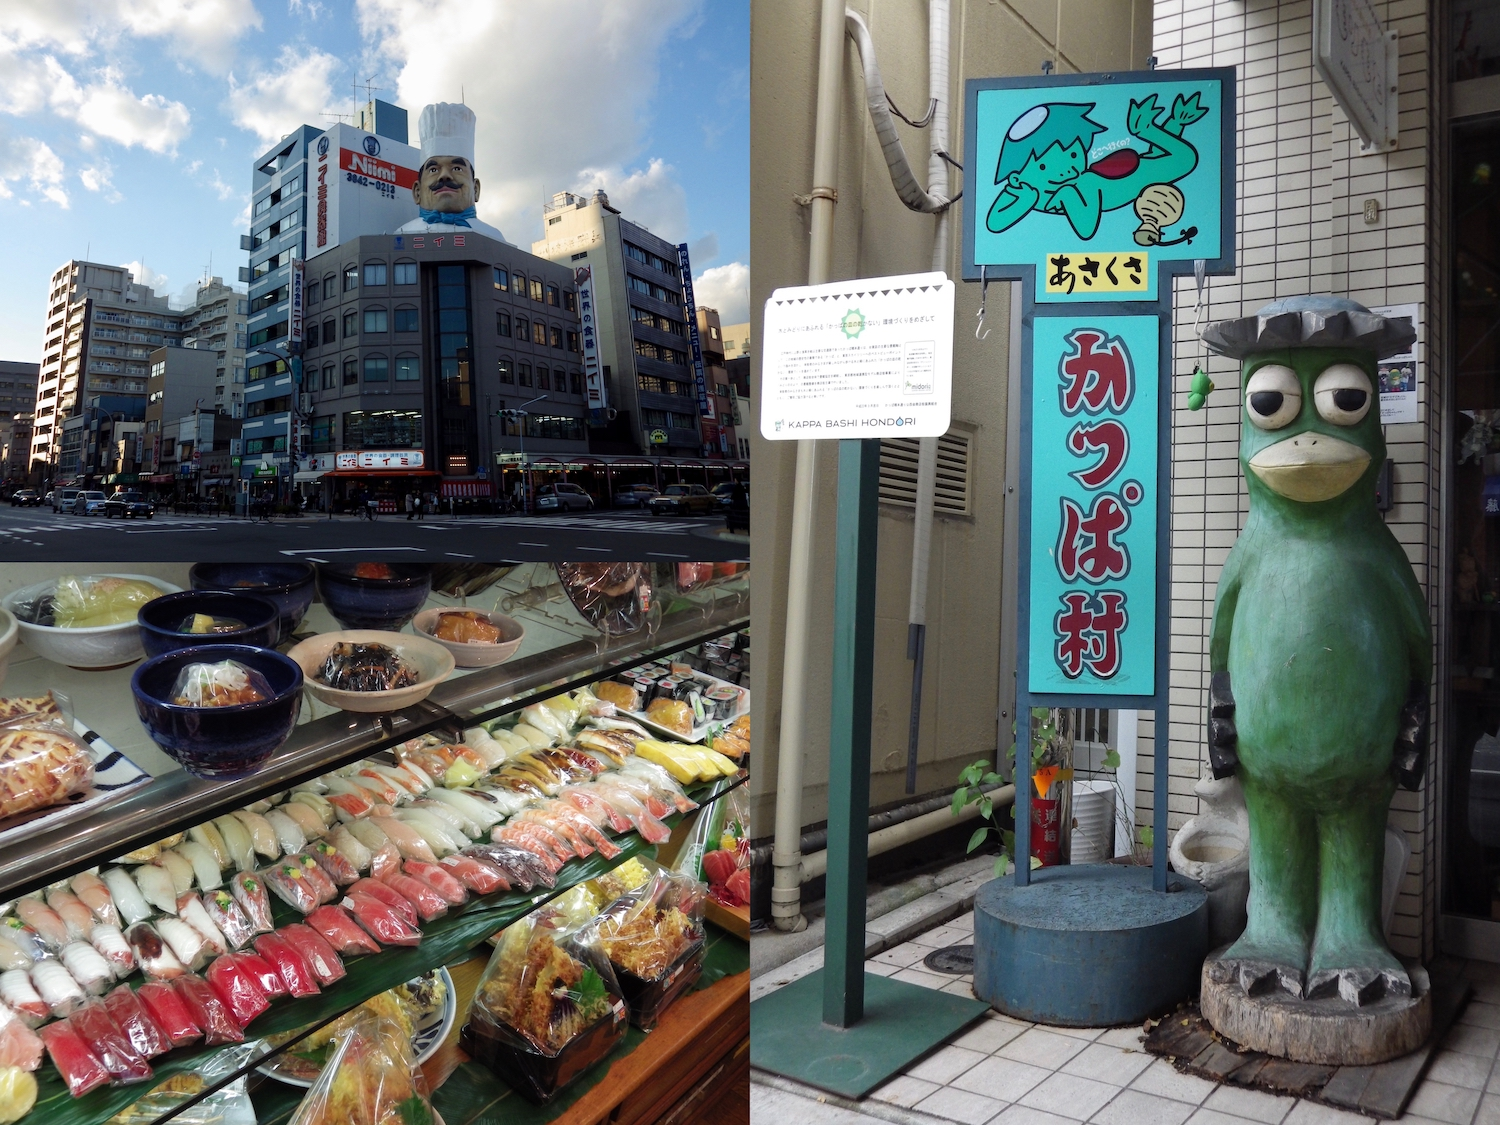 Clockwise, from top left: chef's head at the southern tip of Kappabashi, statue of the mythical  kappa  in front of a store, and shelves of plastic sushi and other fake food.